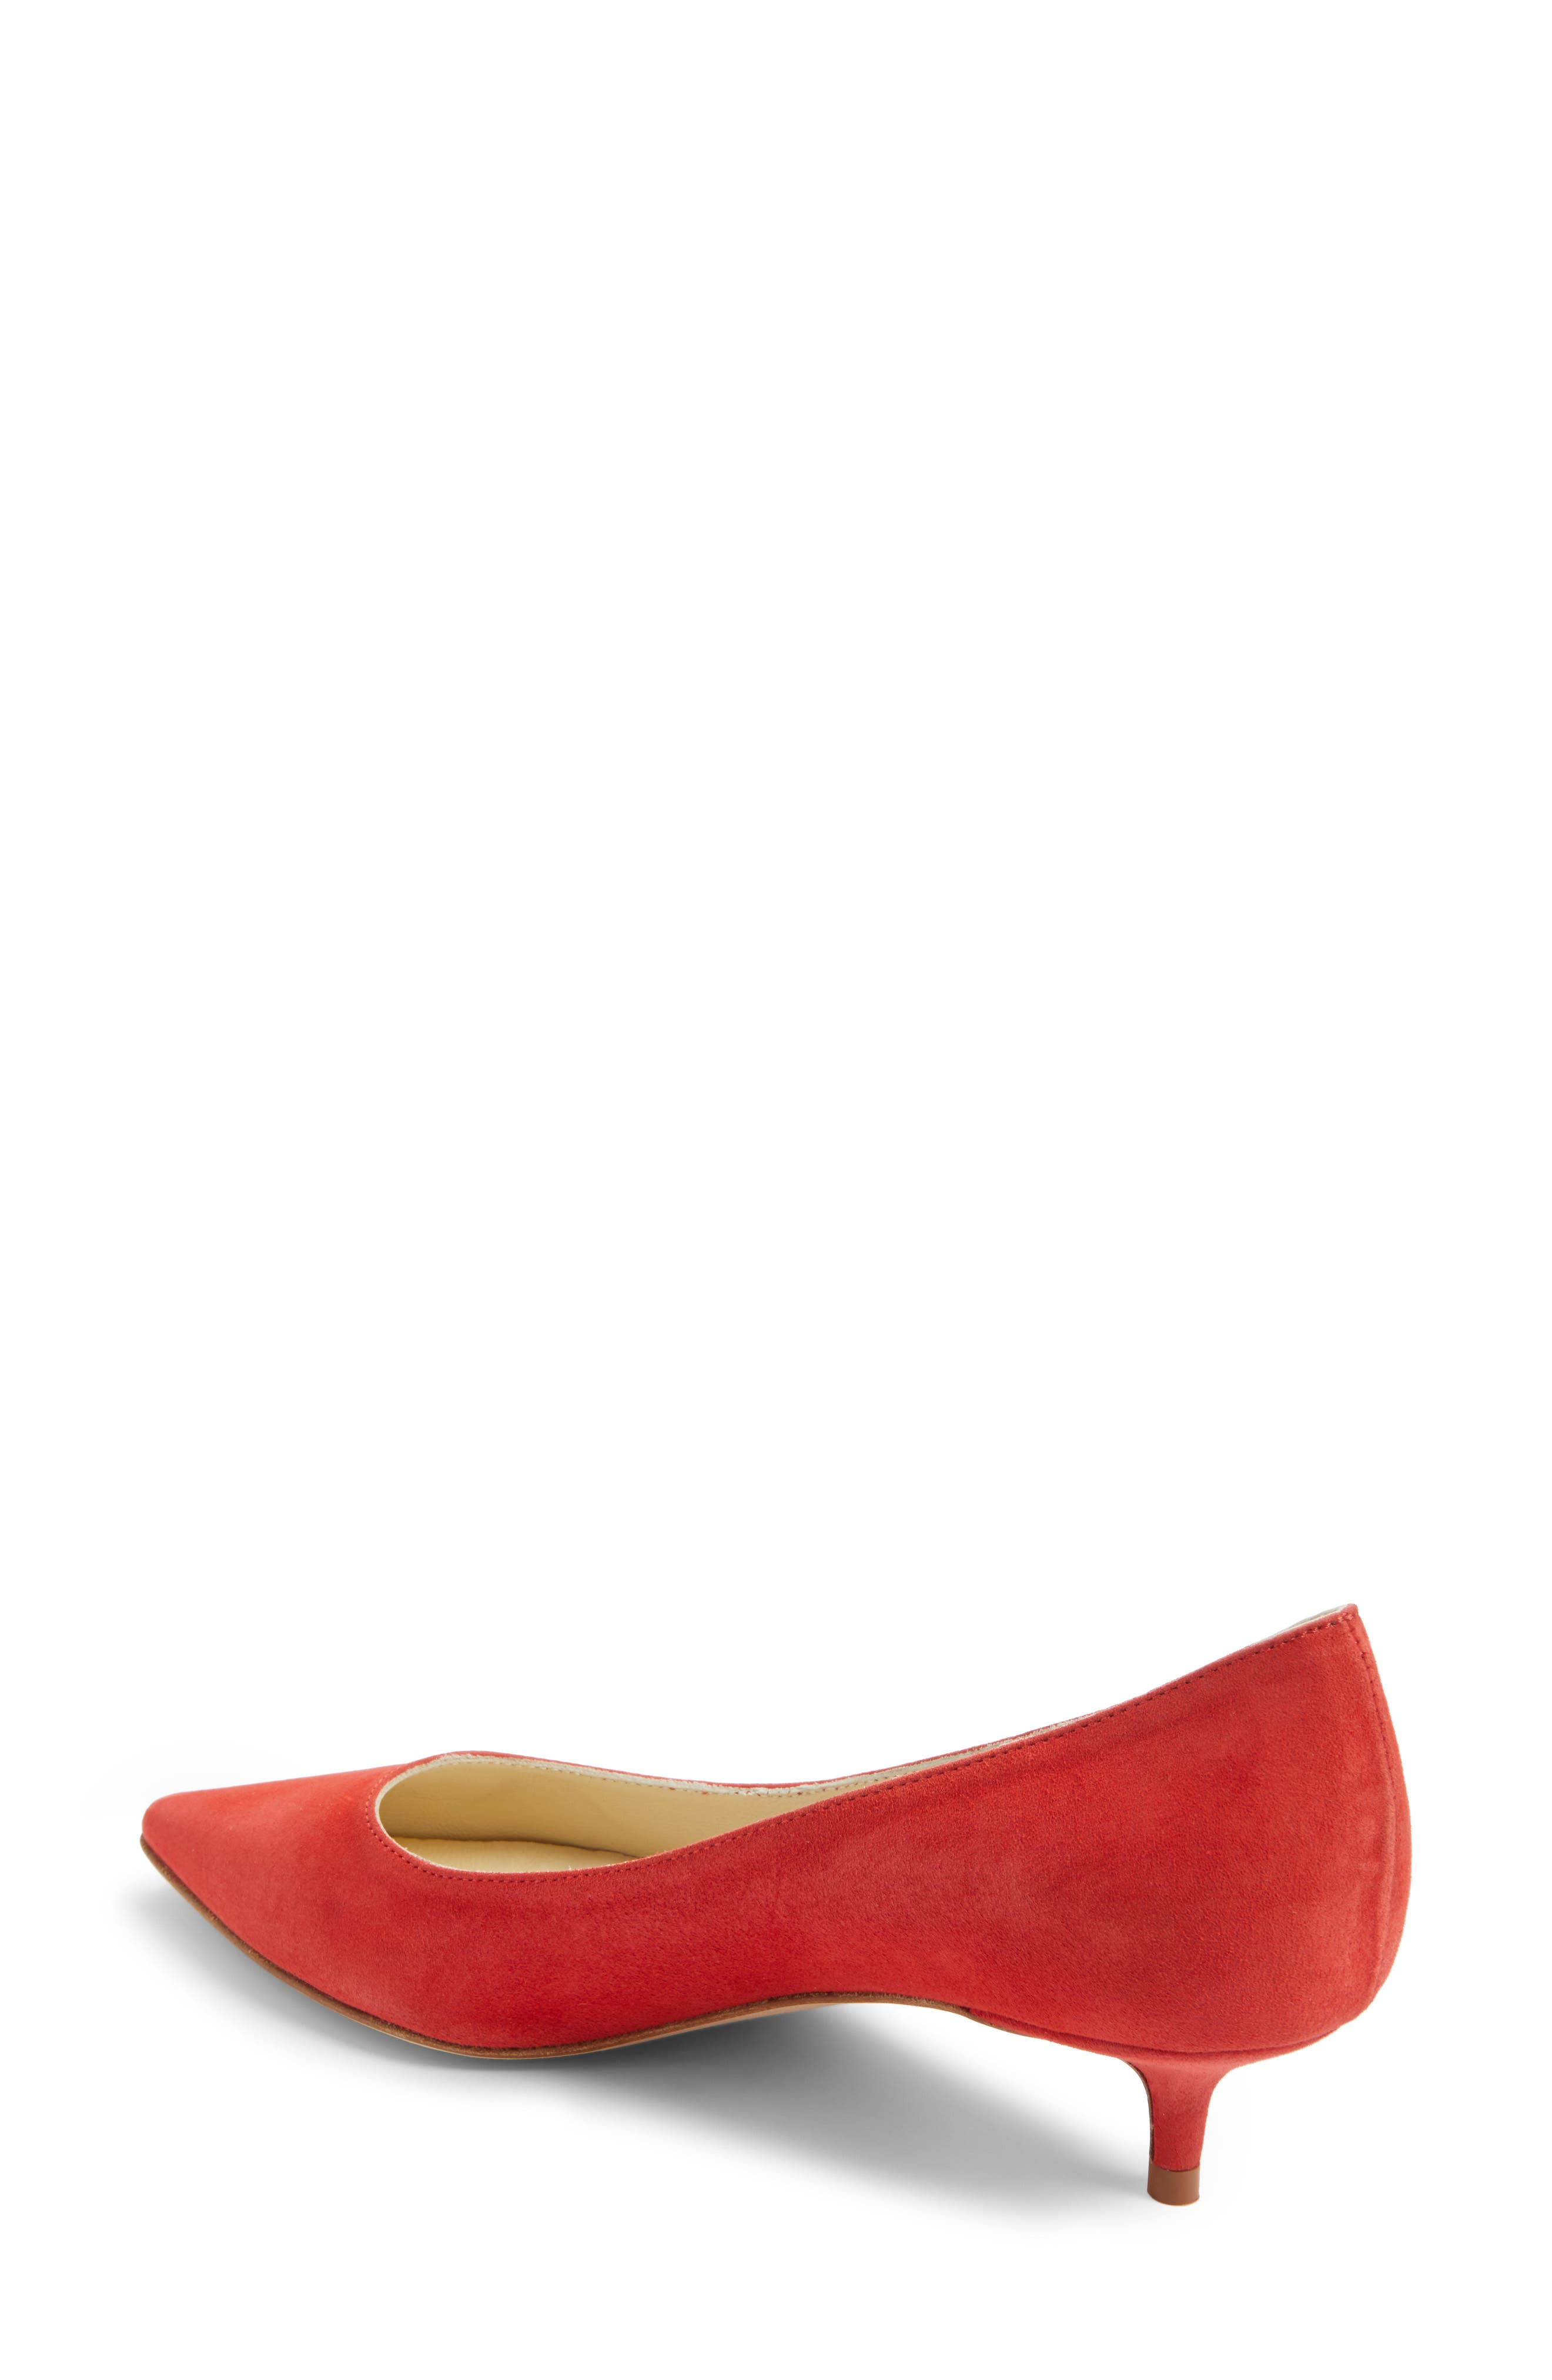 Butter Born Pointy Toe Pump,                             Alternate thumbnail 14, color,